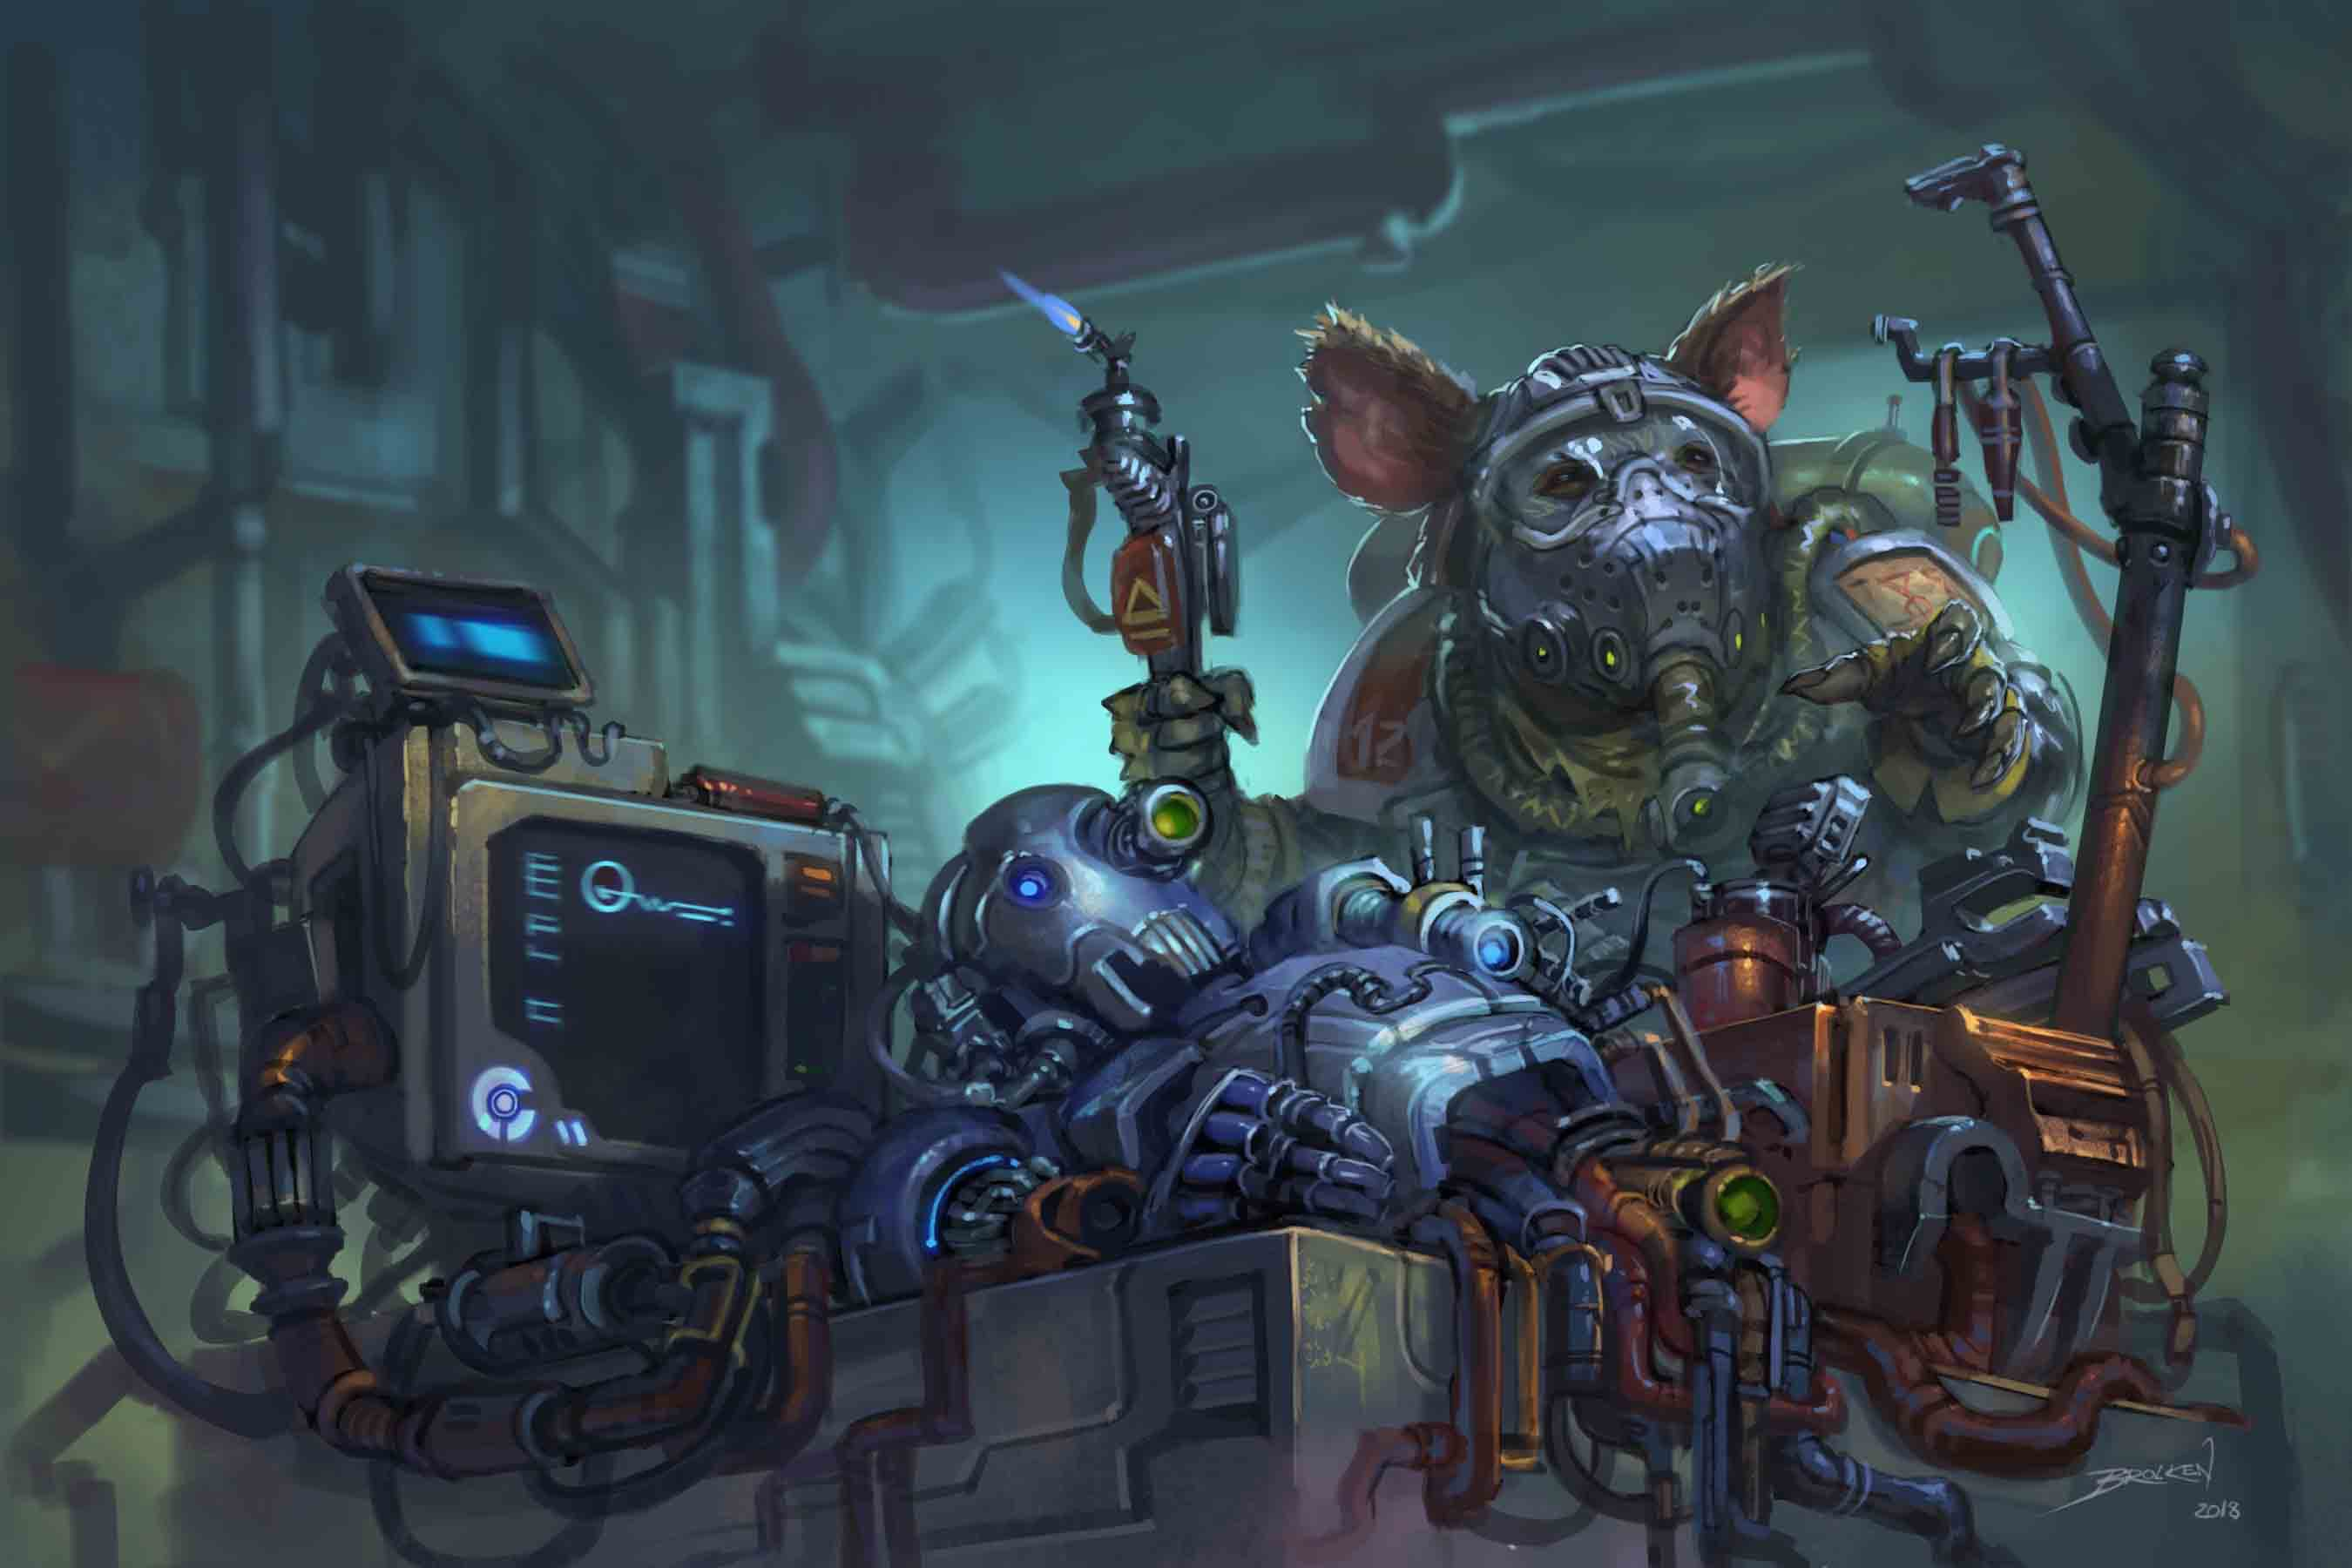 Quig, the iconic ysoki mechanic, holds a plasma cutter over the remains of a shattered humanoid robot.